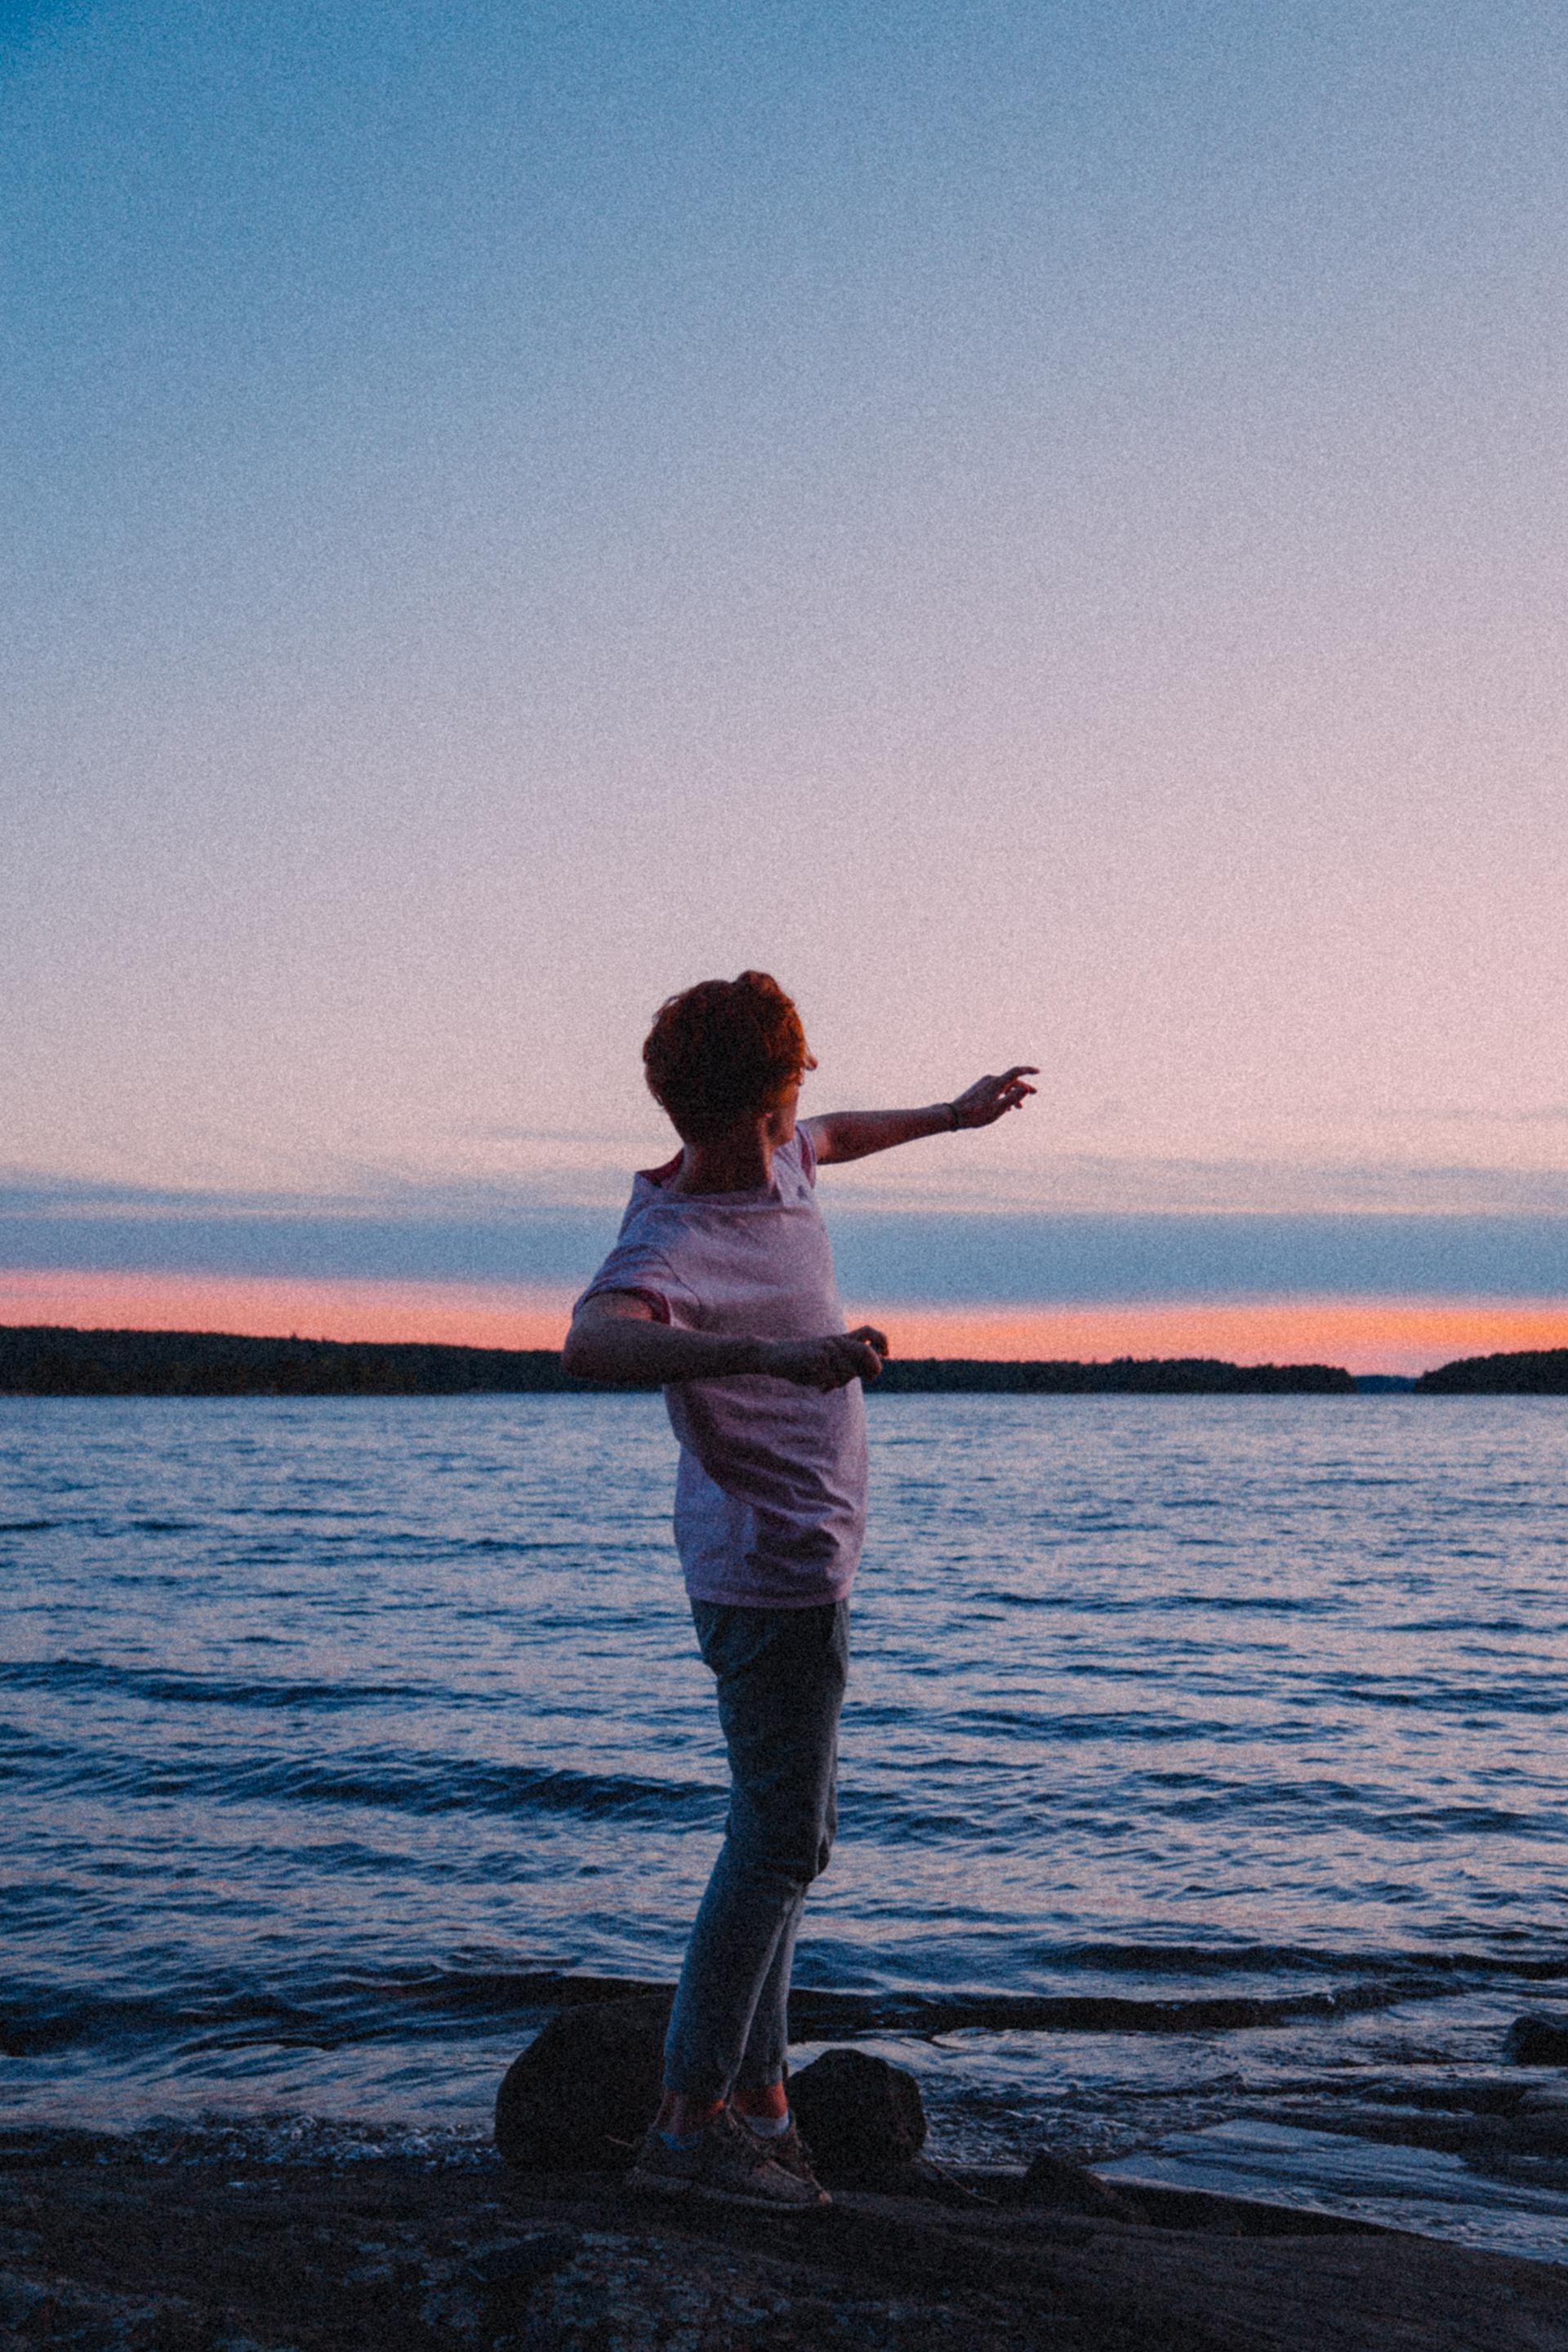 Young man throwing a stone into a lake, during sunset.